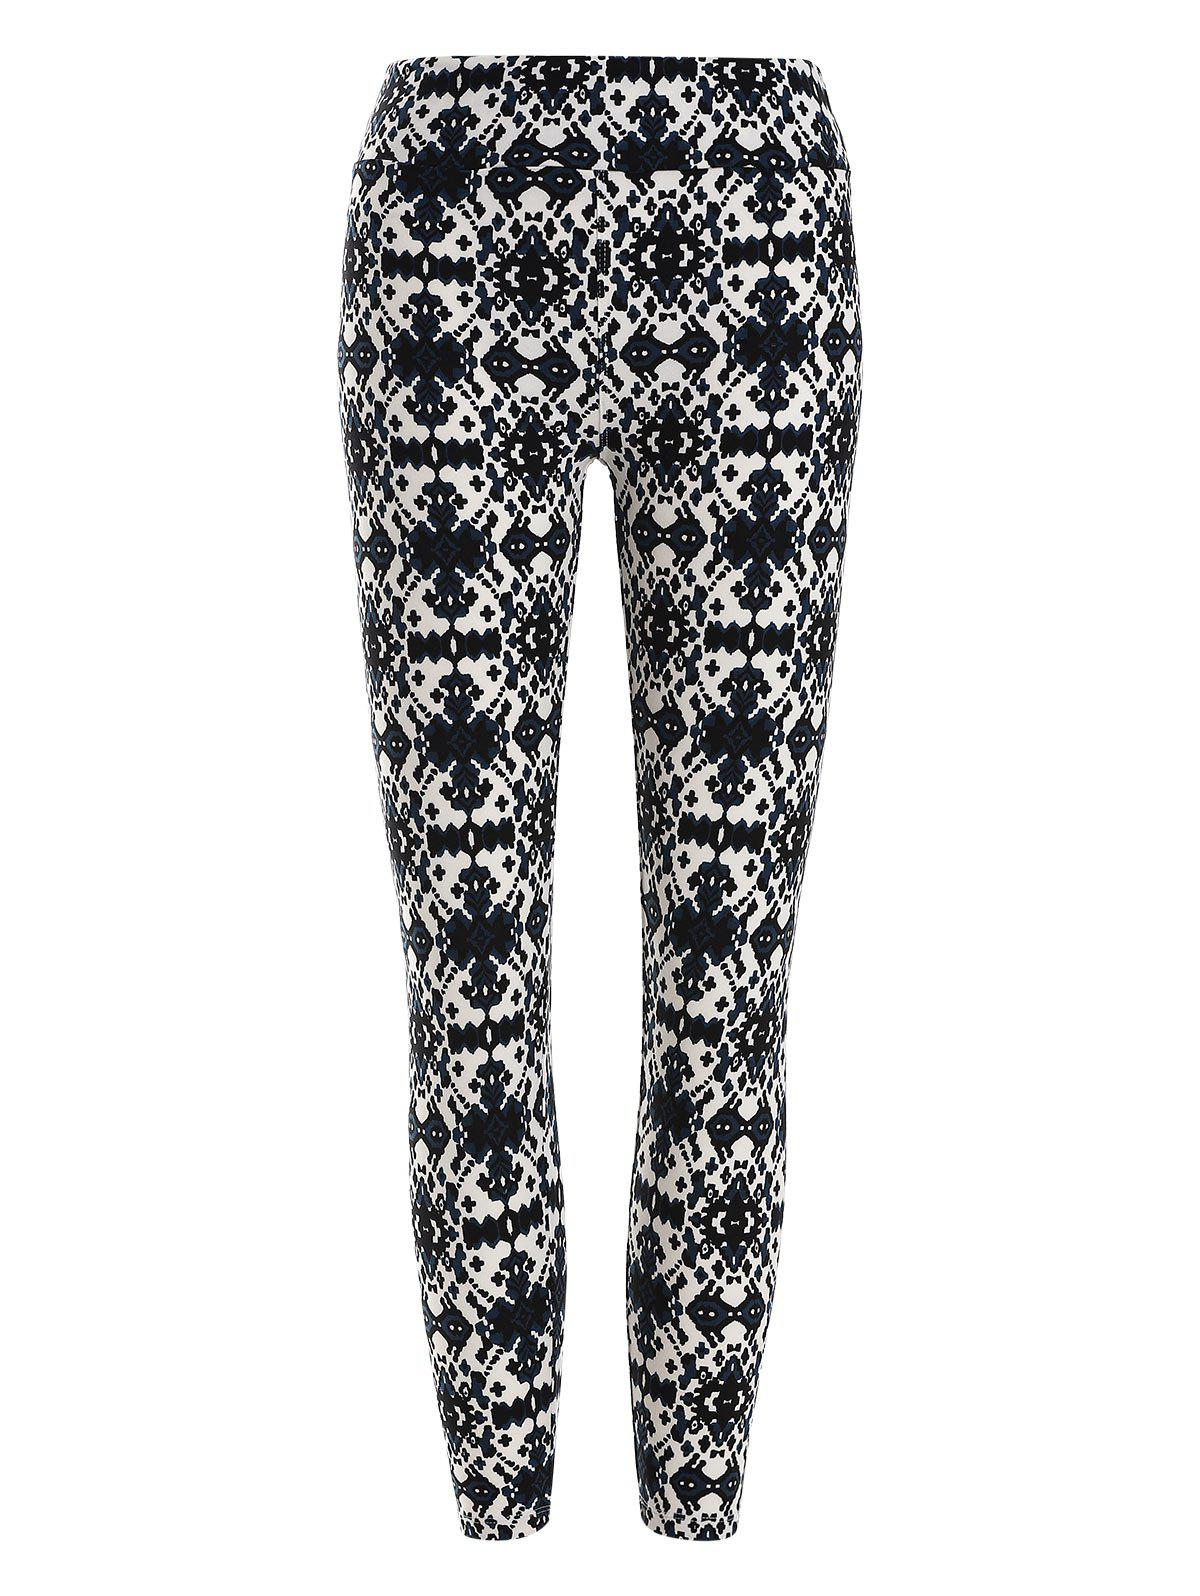 Skinny Printed Leggings - multicolor ONE SIZE